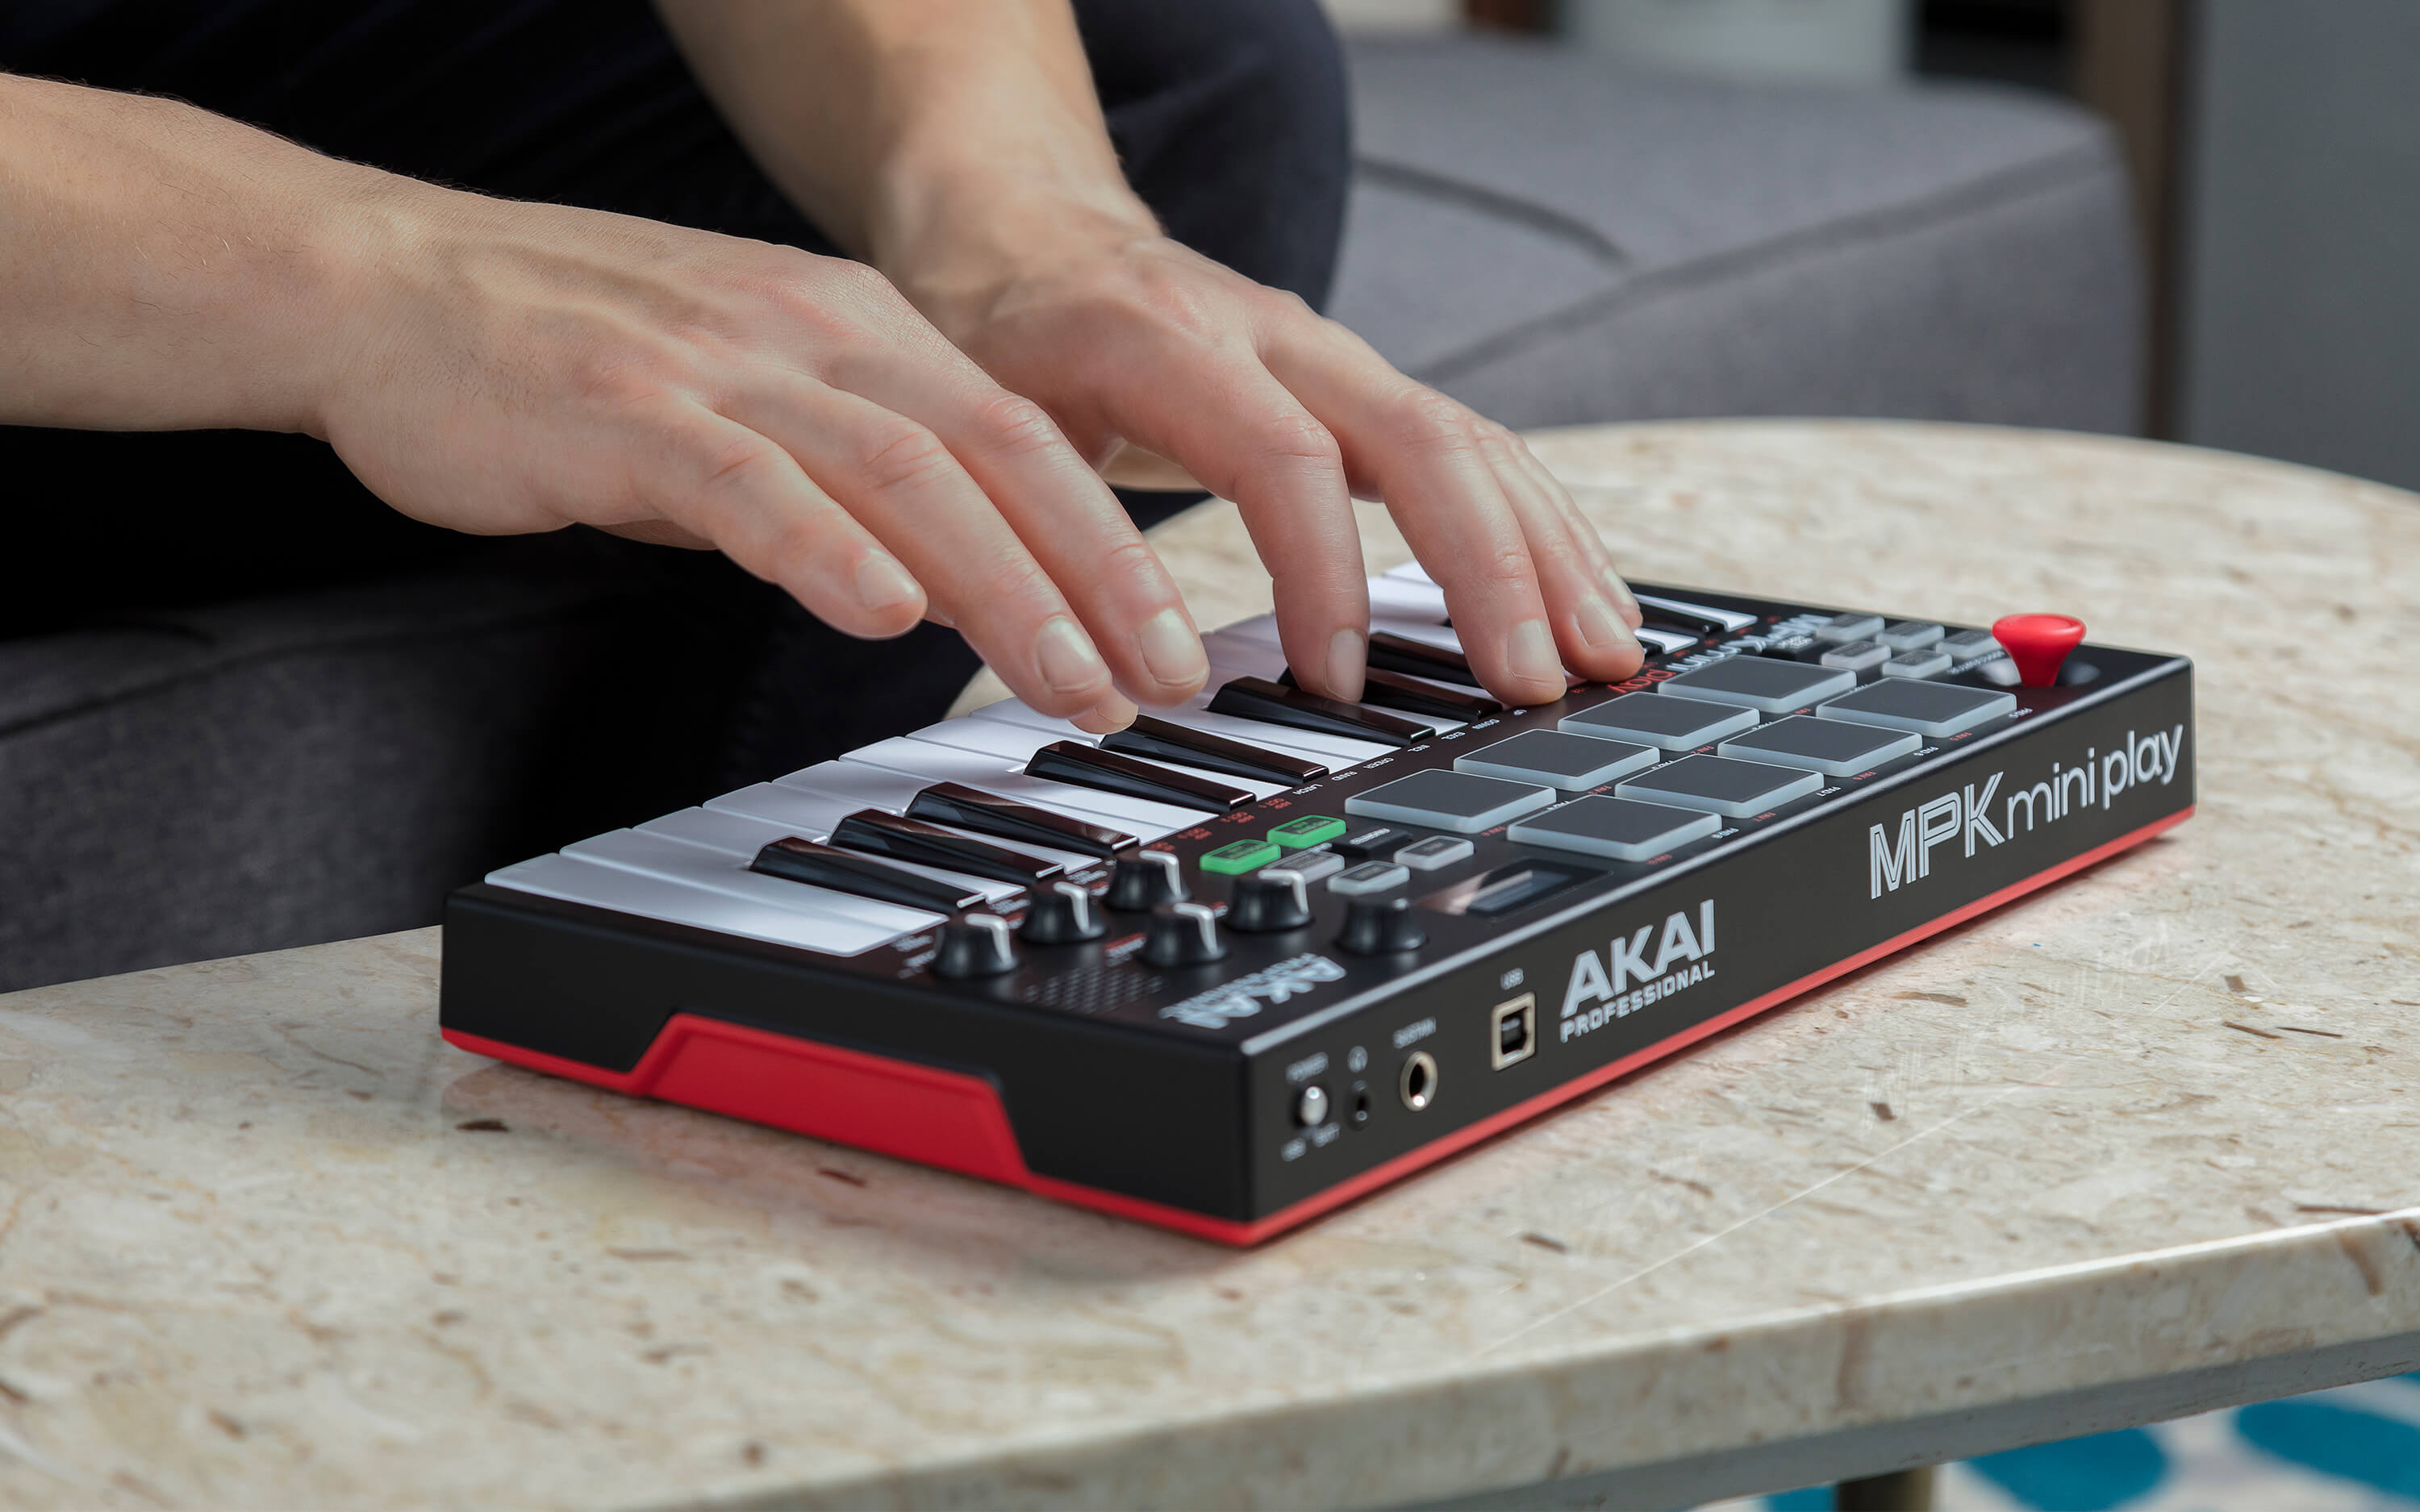 akai professional launches mpk mini play midi controller with built in sounds